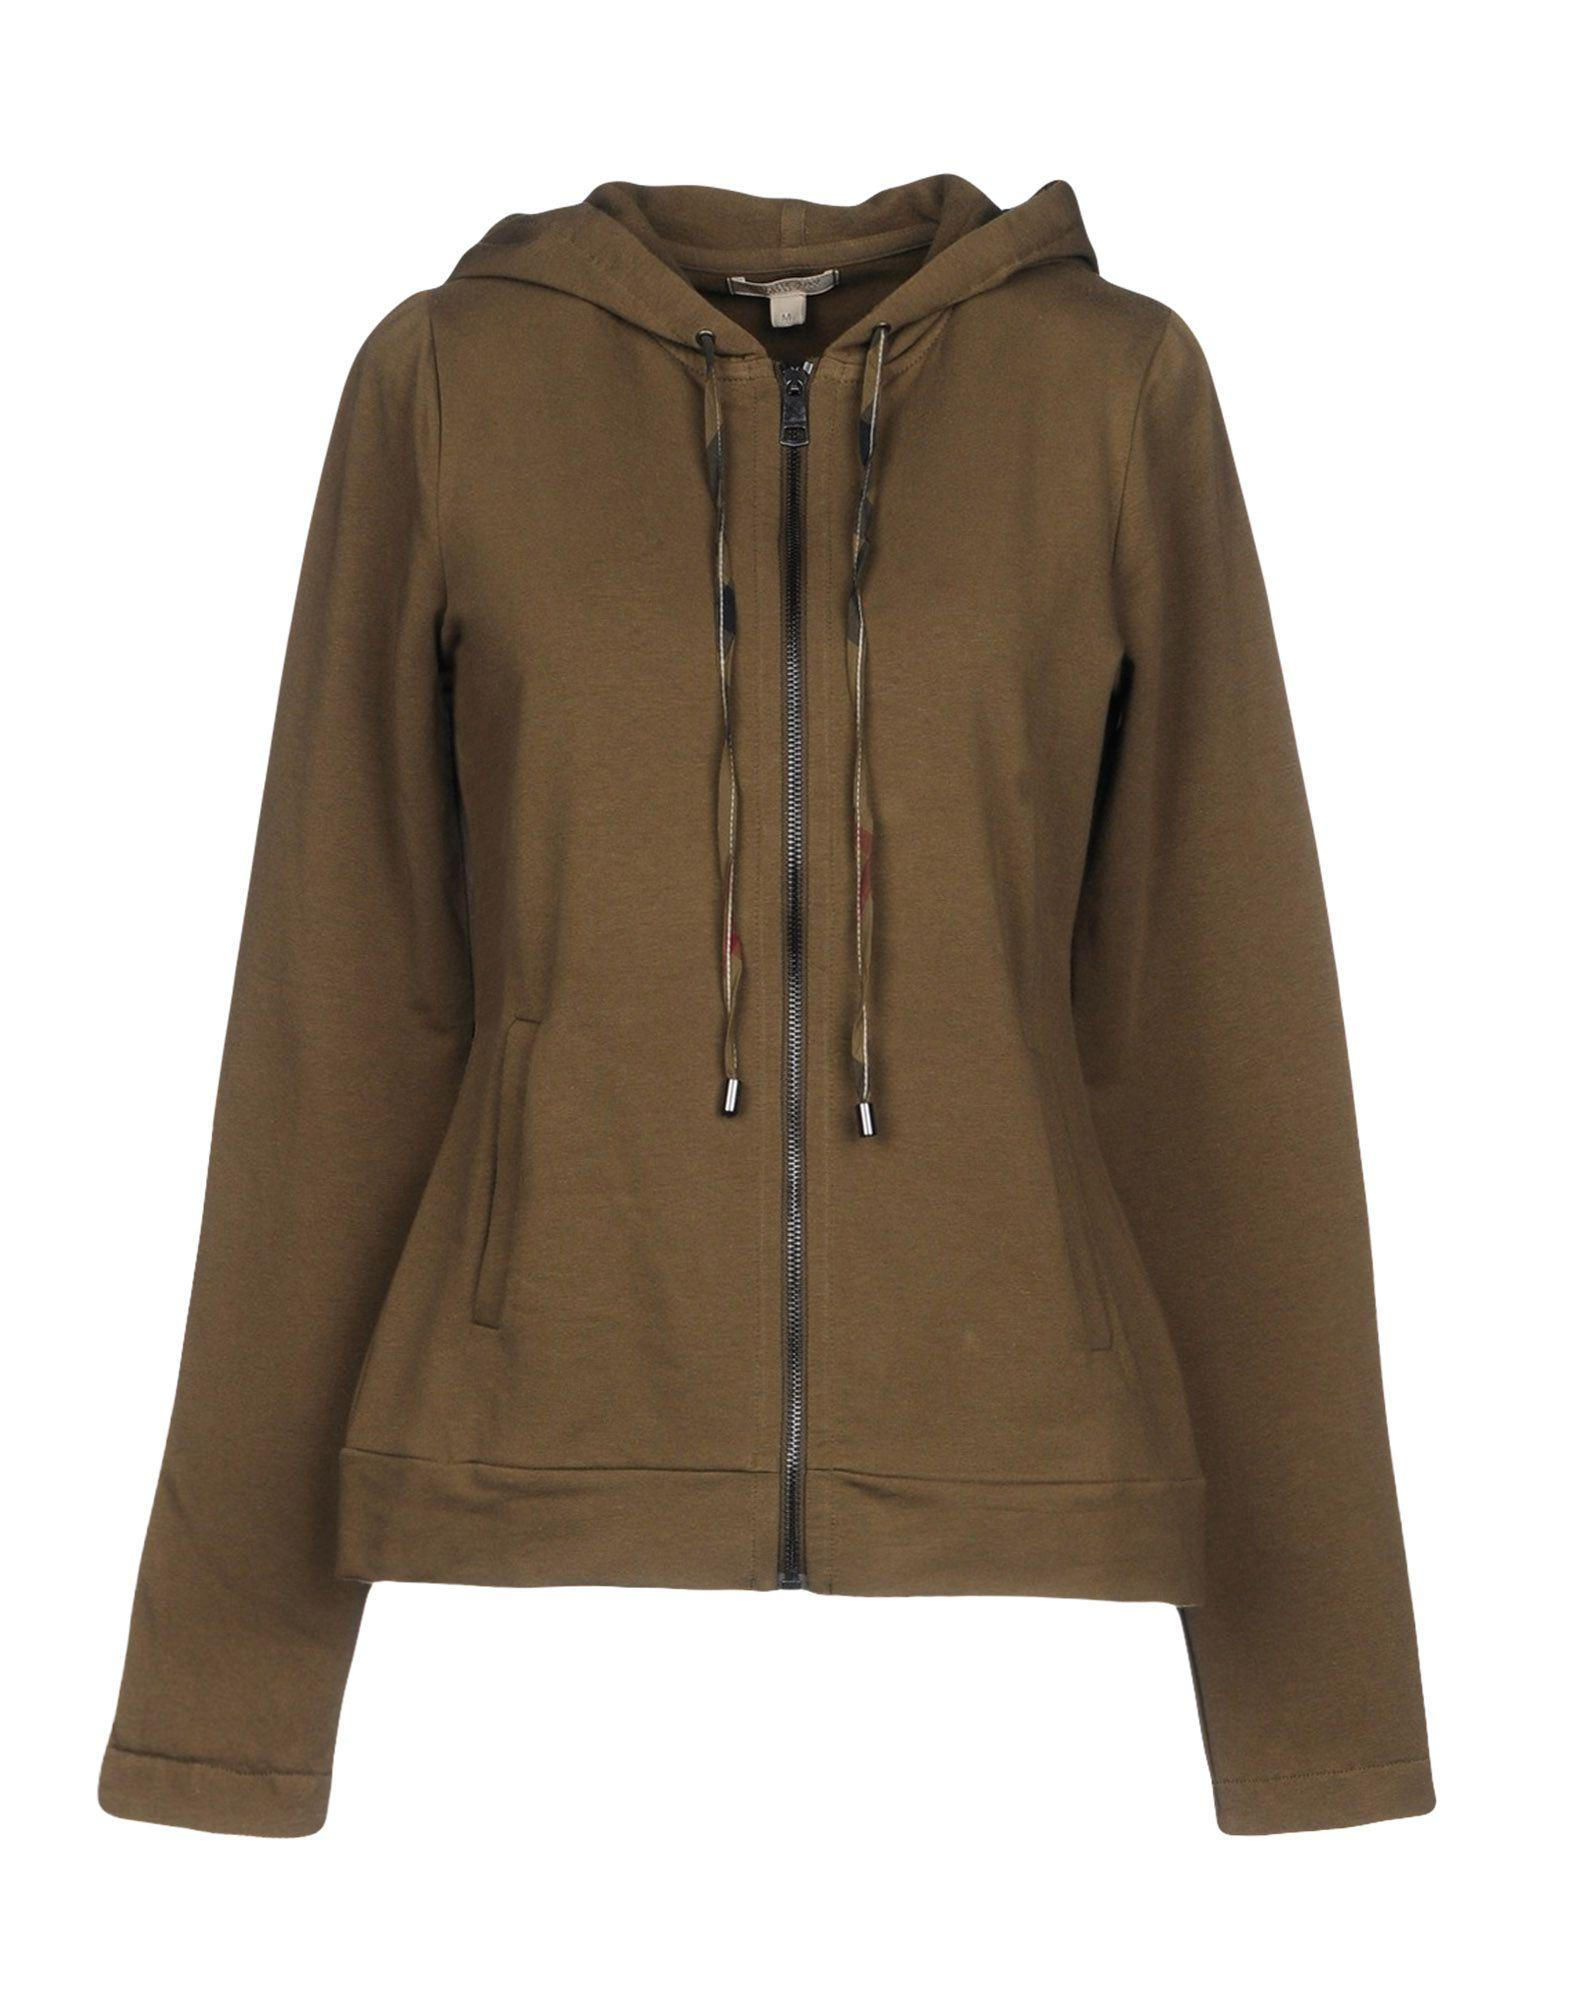 Burberry Sweatshirts In Military Green